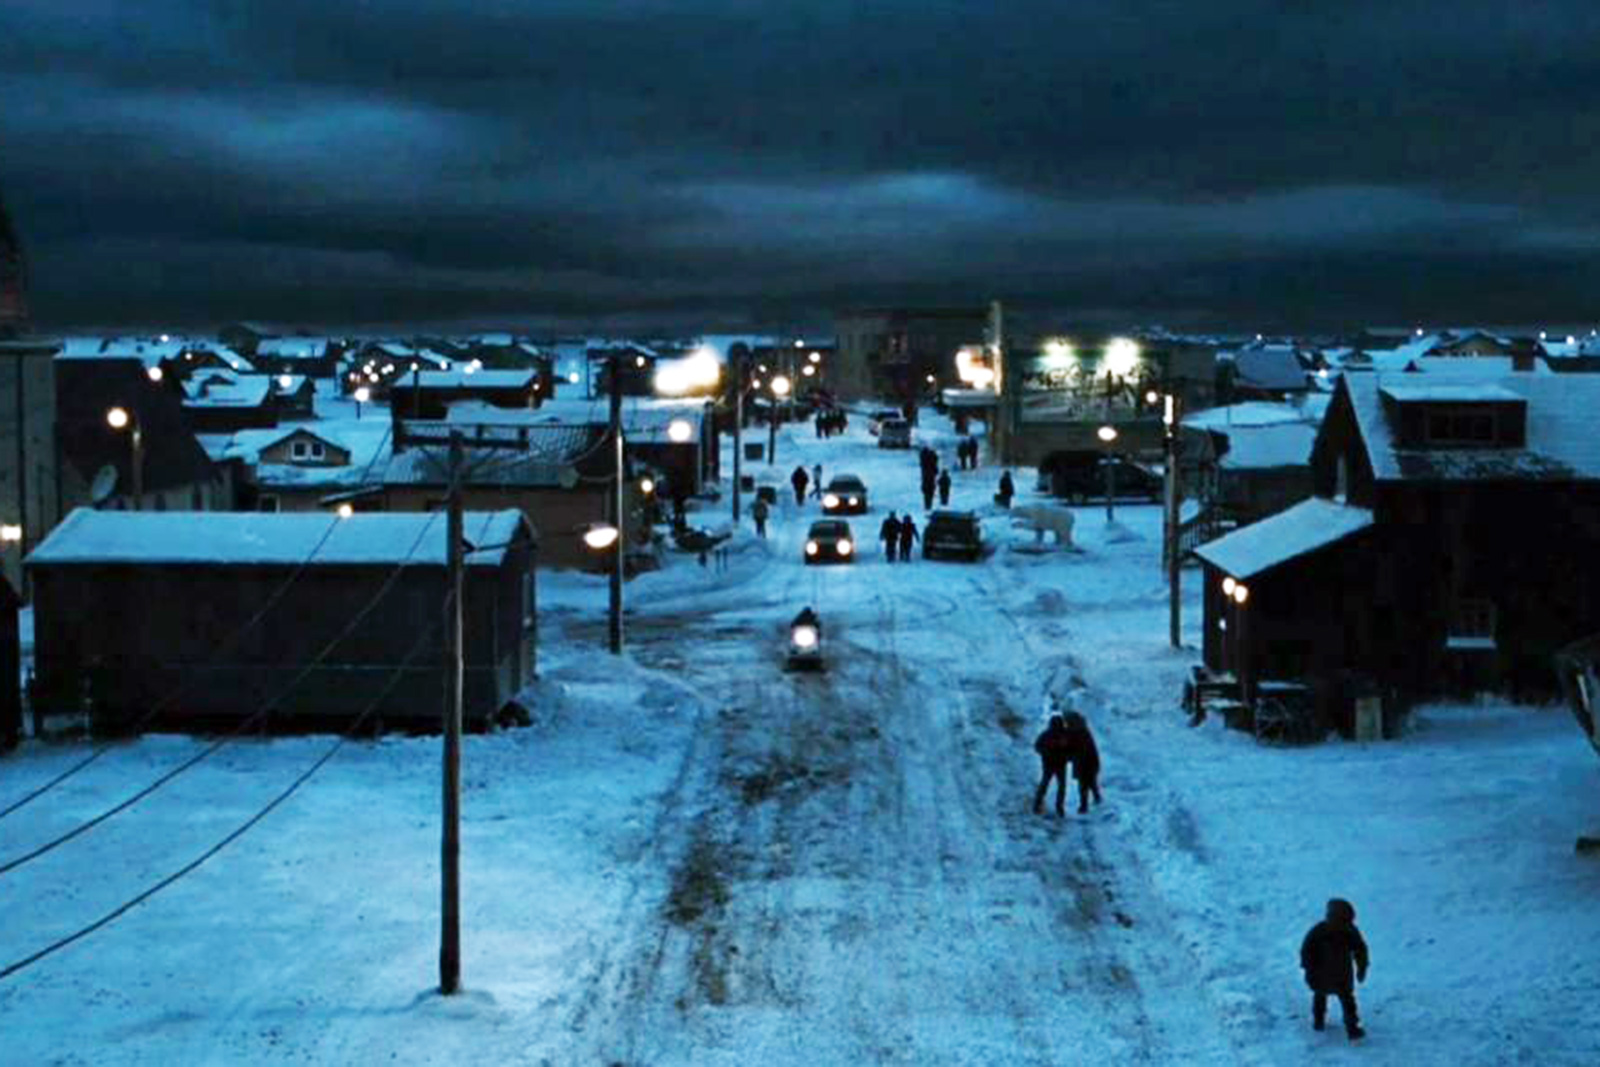 The town of Barrow, the Alaskan village that lived without sunshine for 65 days: two months